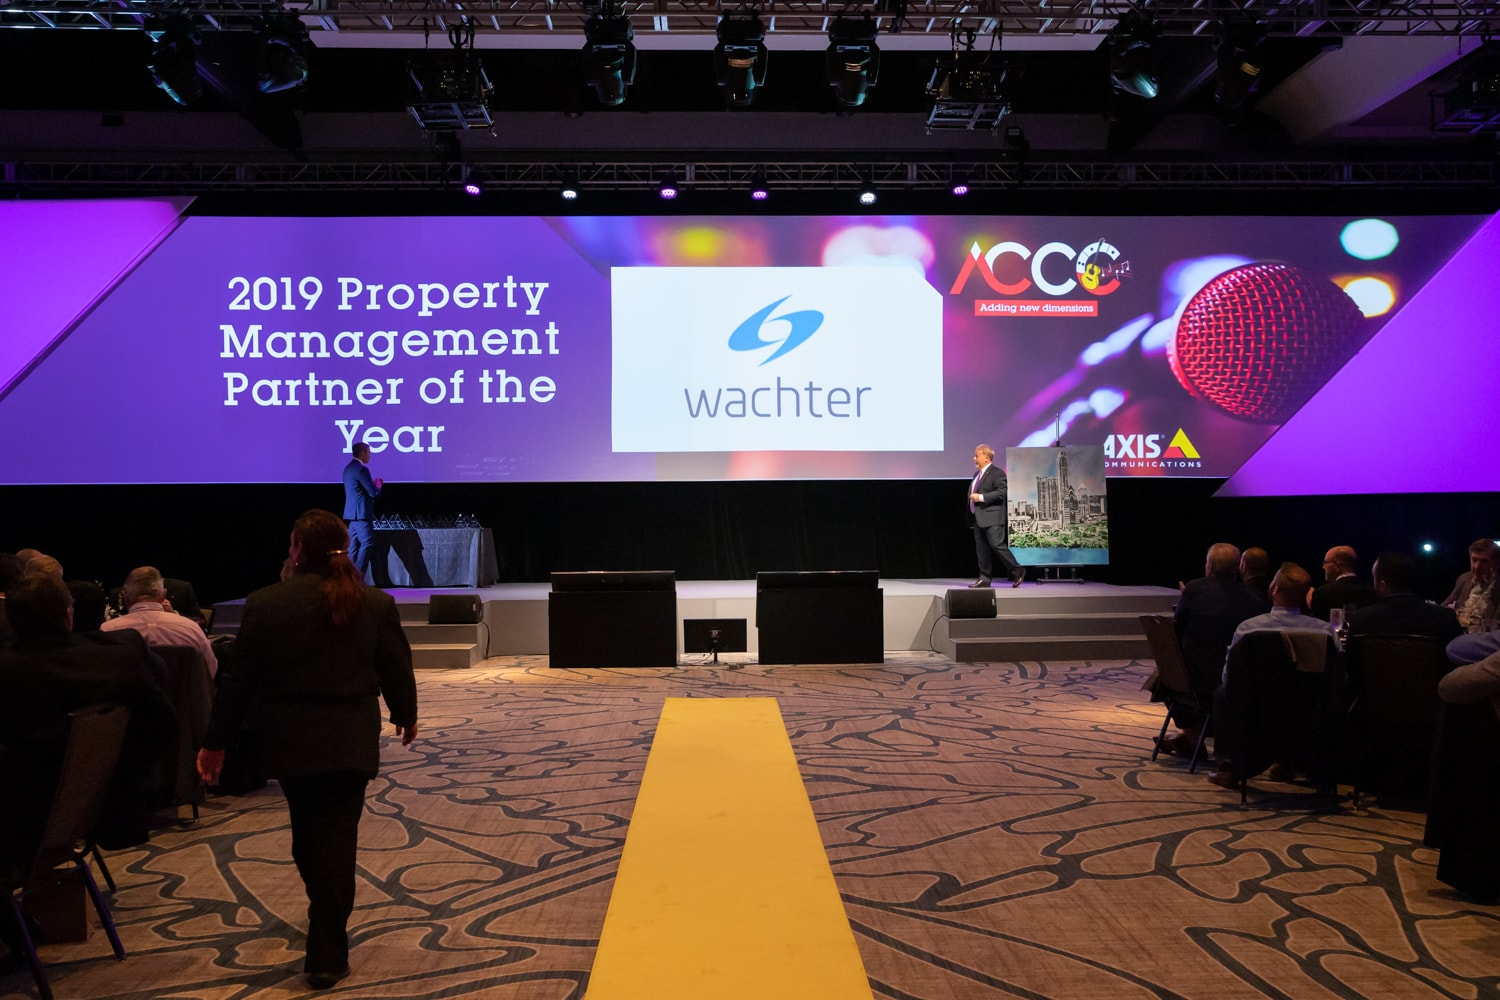 Axis Awards Wachter 2019 Property Management Partner of the Year